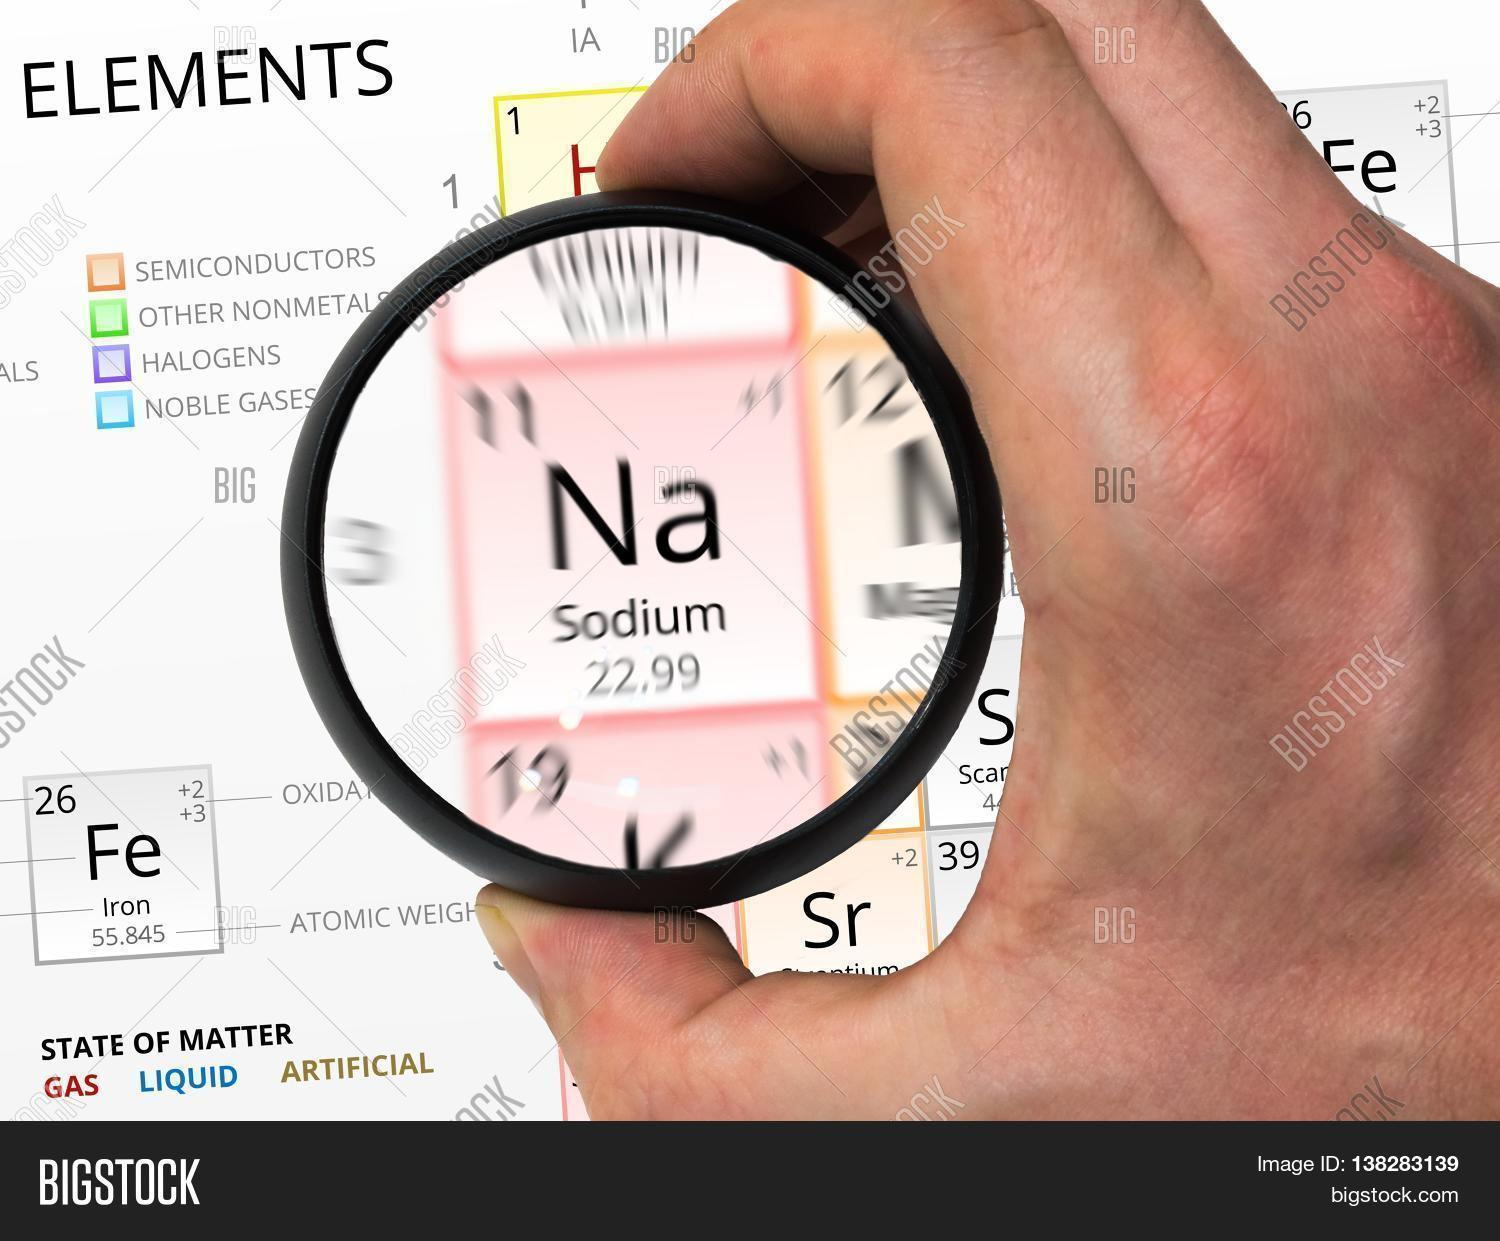 Sodium symbol na image photo free trial bigstock sodium symbol na element of the periodic table zoomed with ma urtaz Image collections